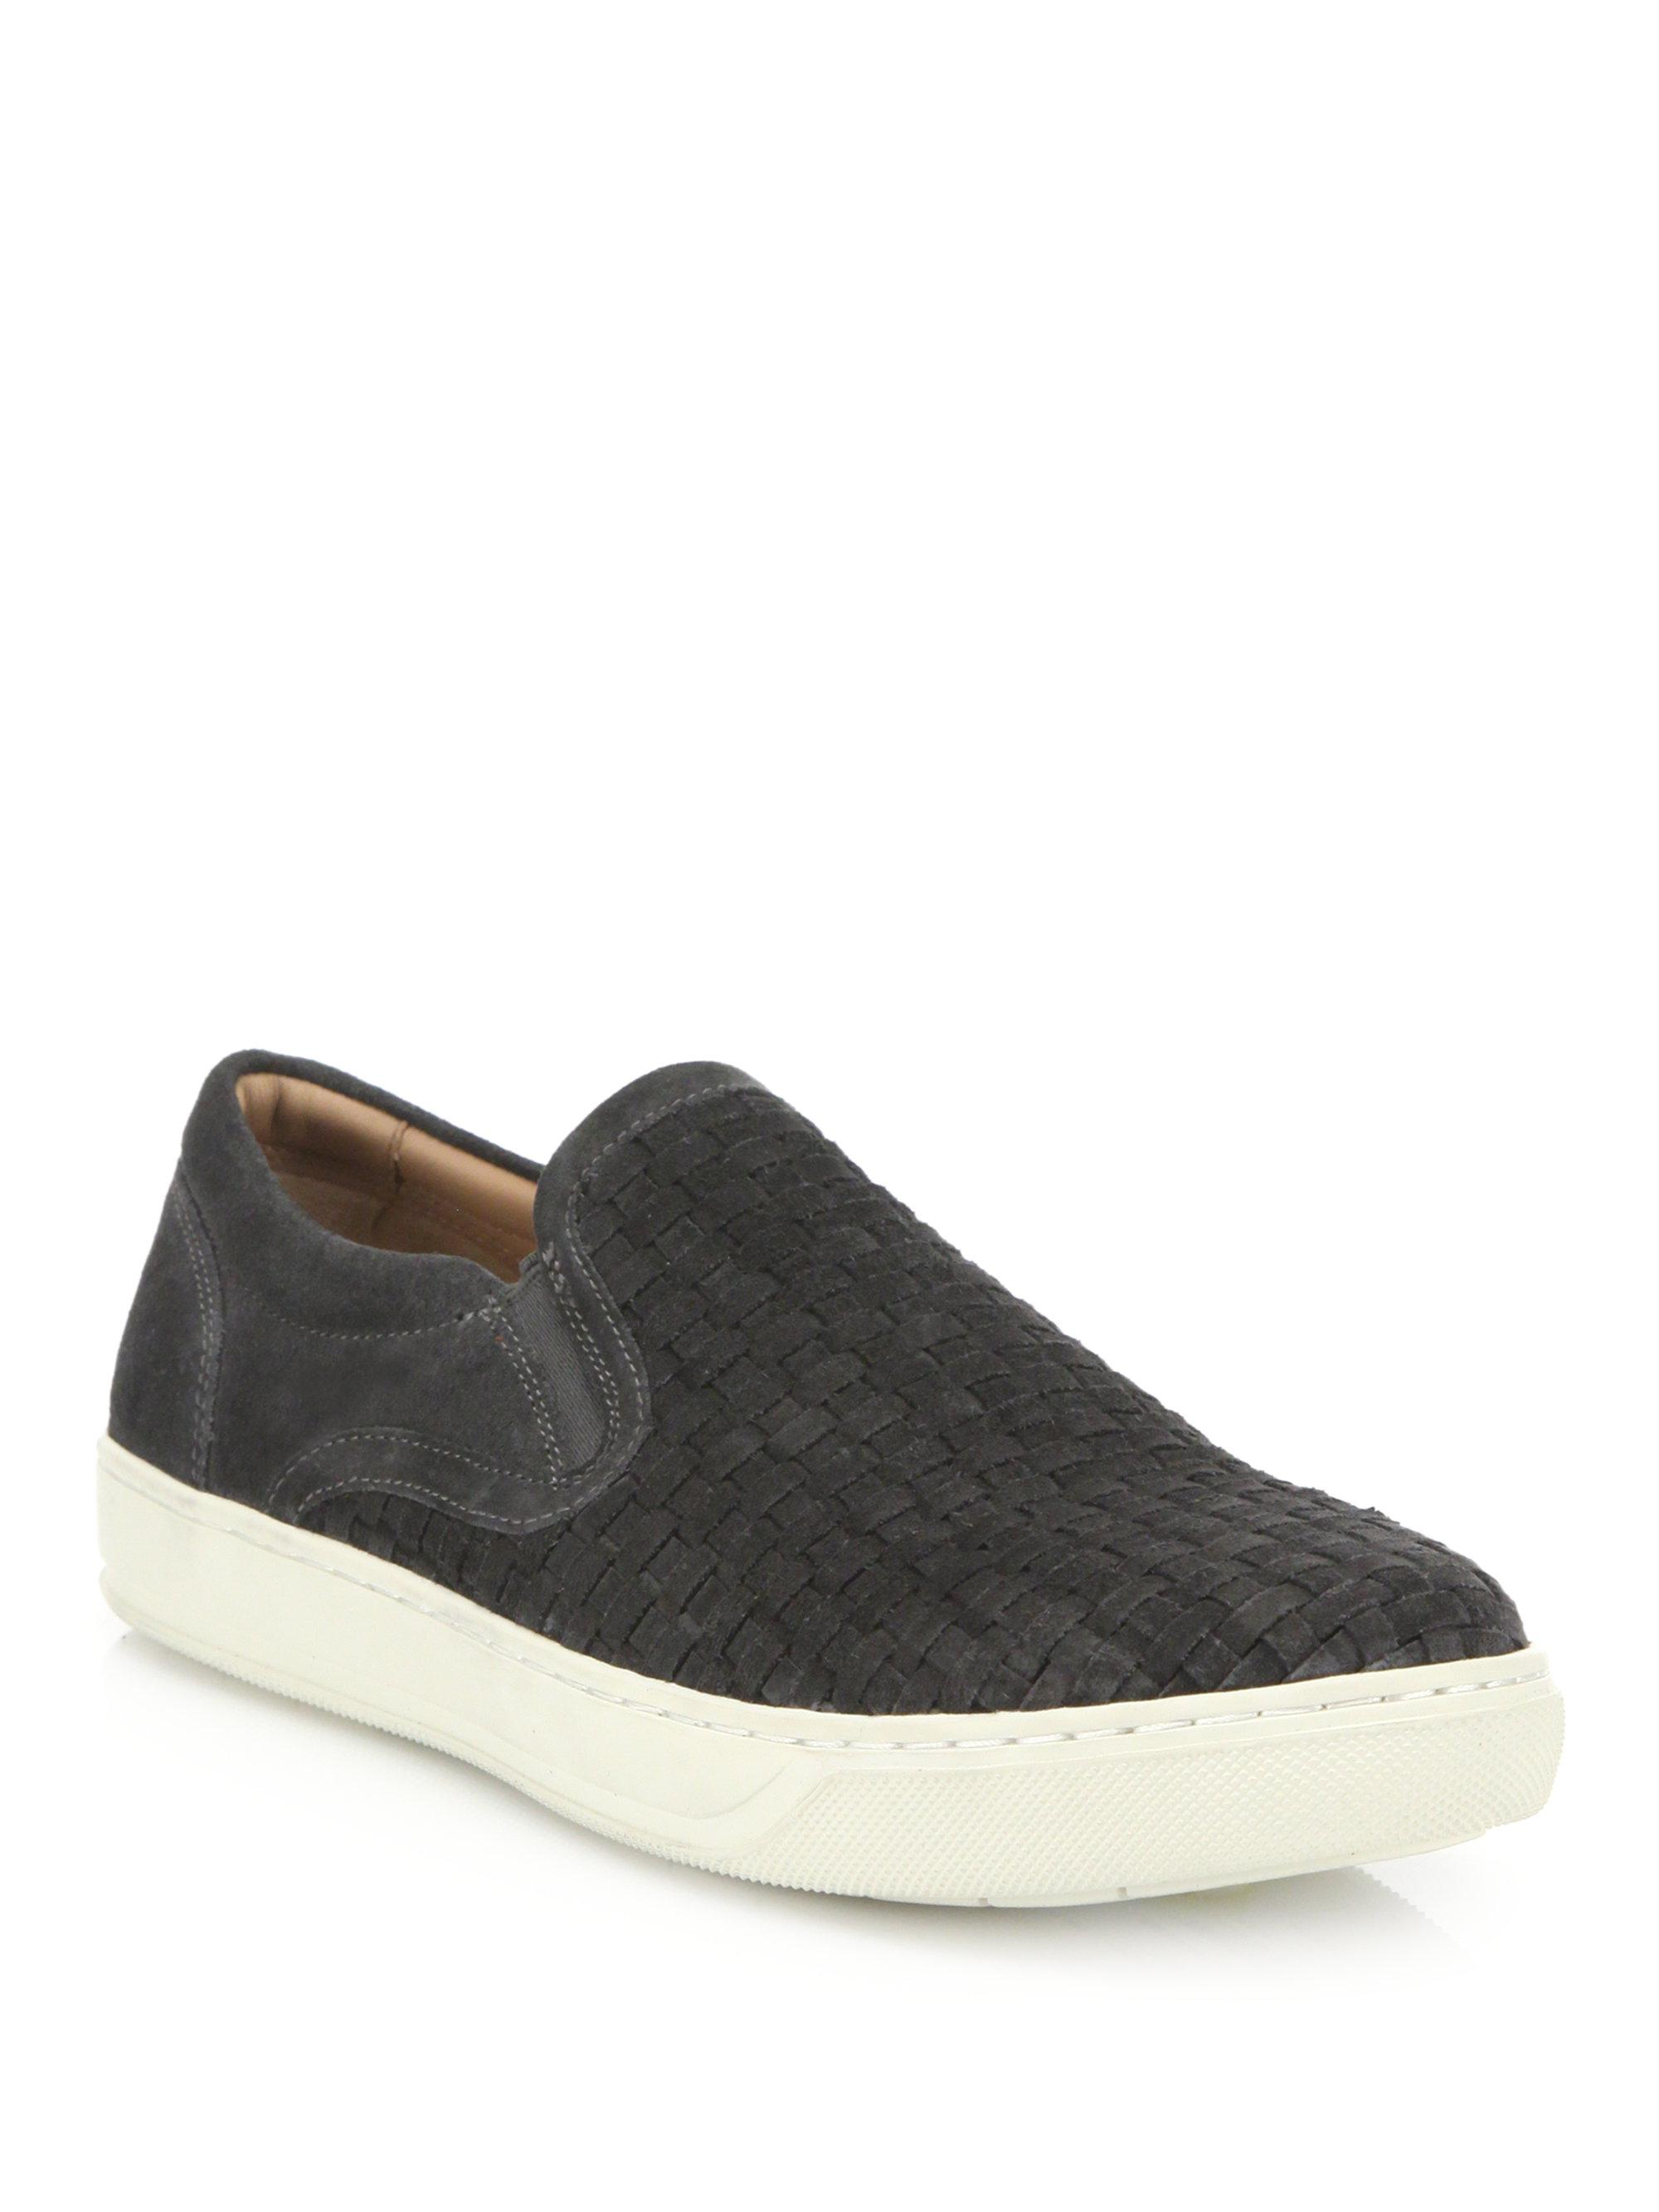 Vince Woven Suede Slip-On Sneakers